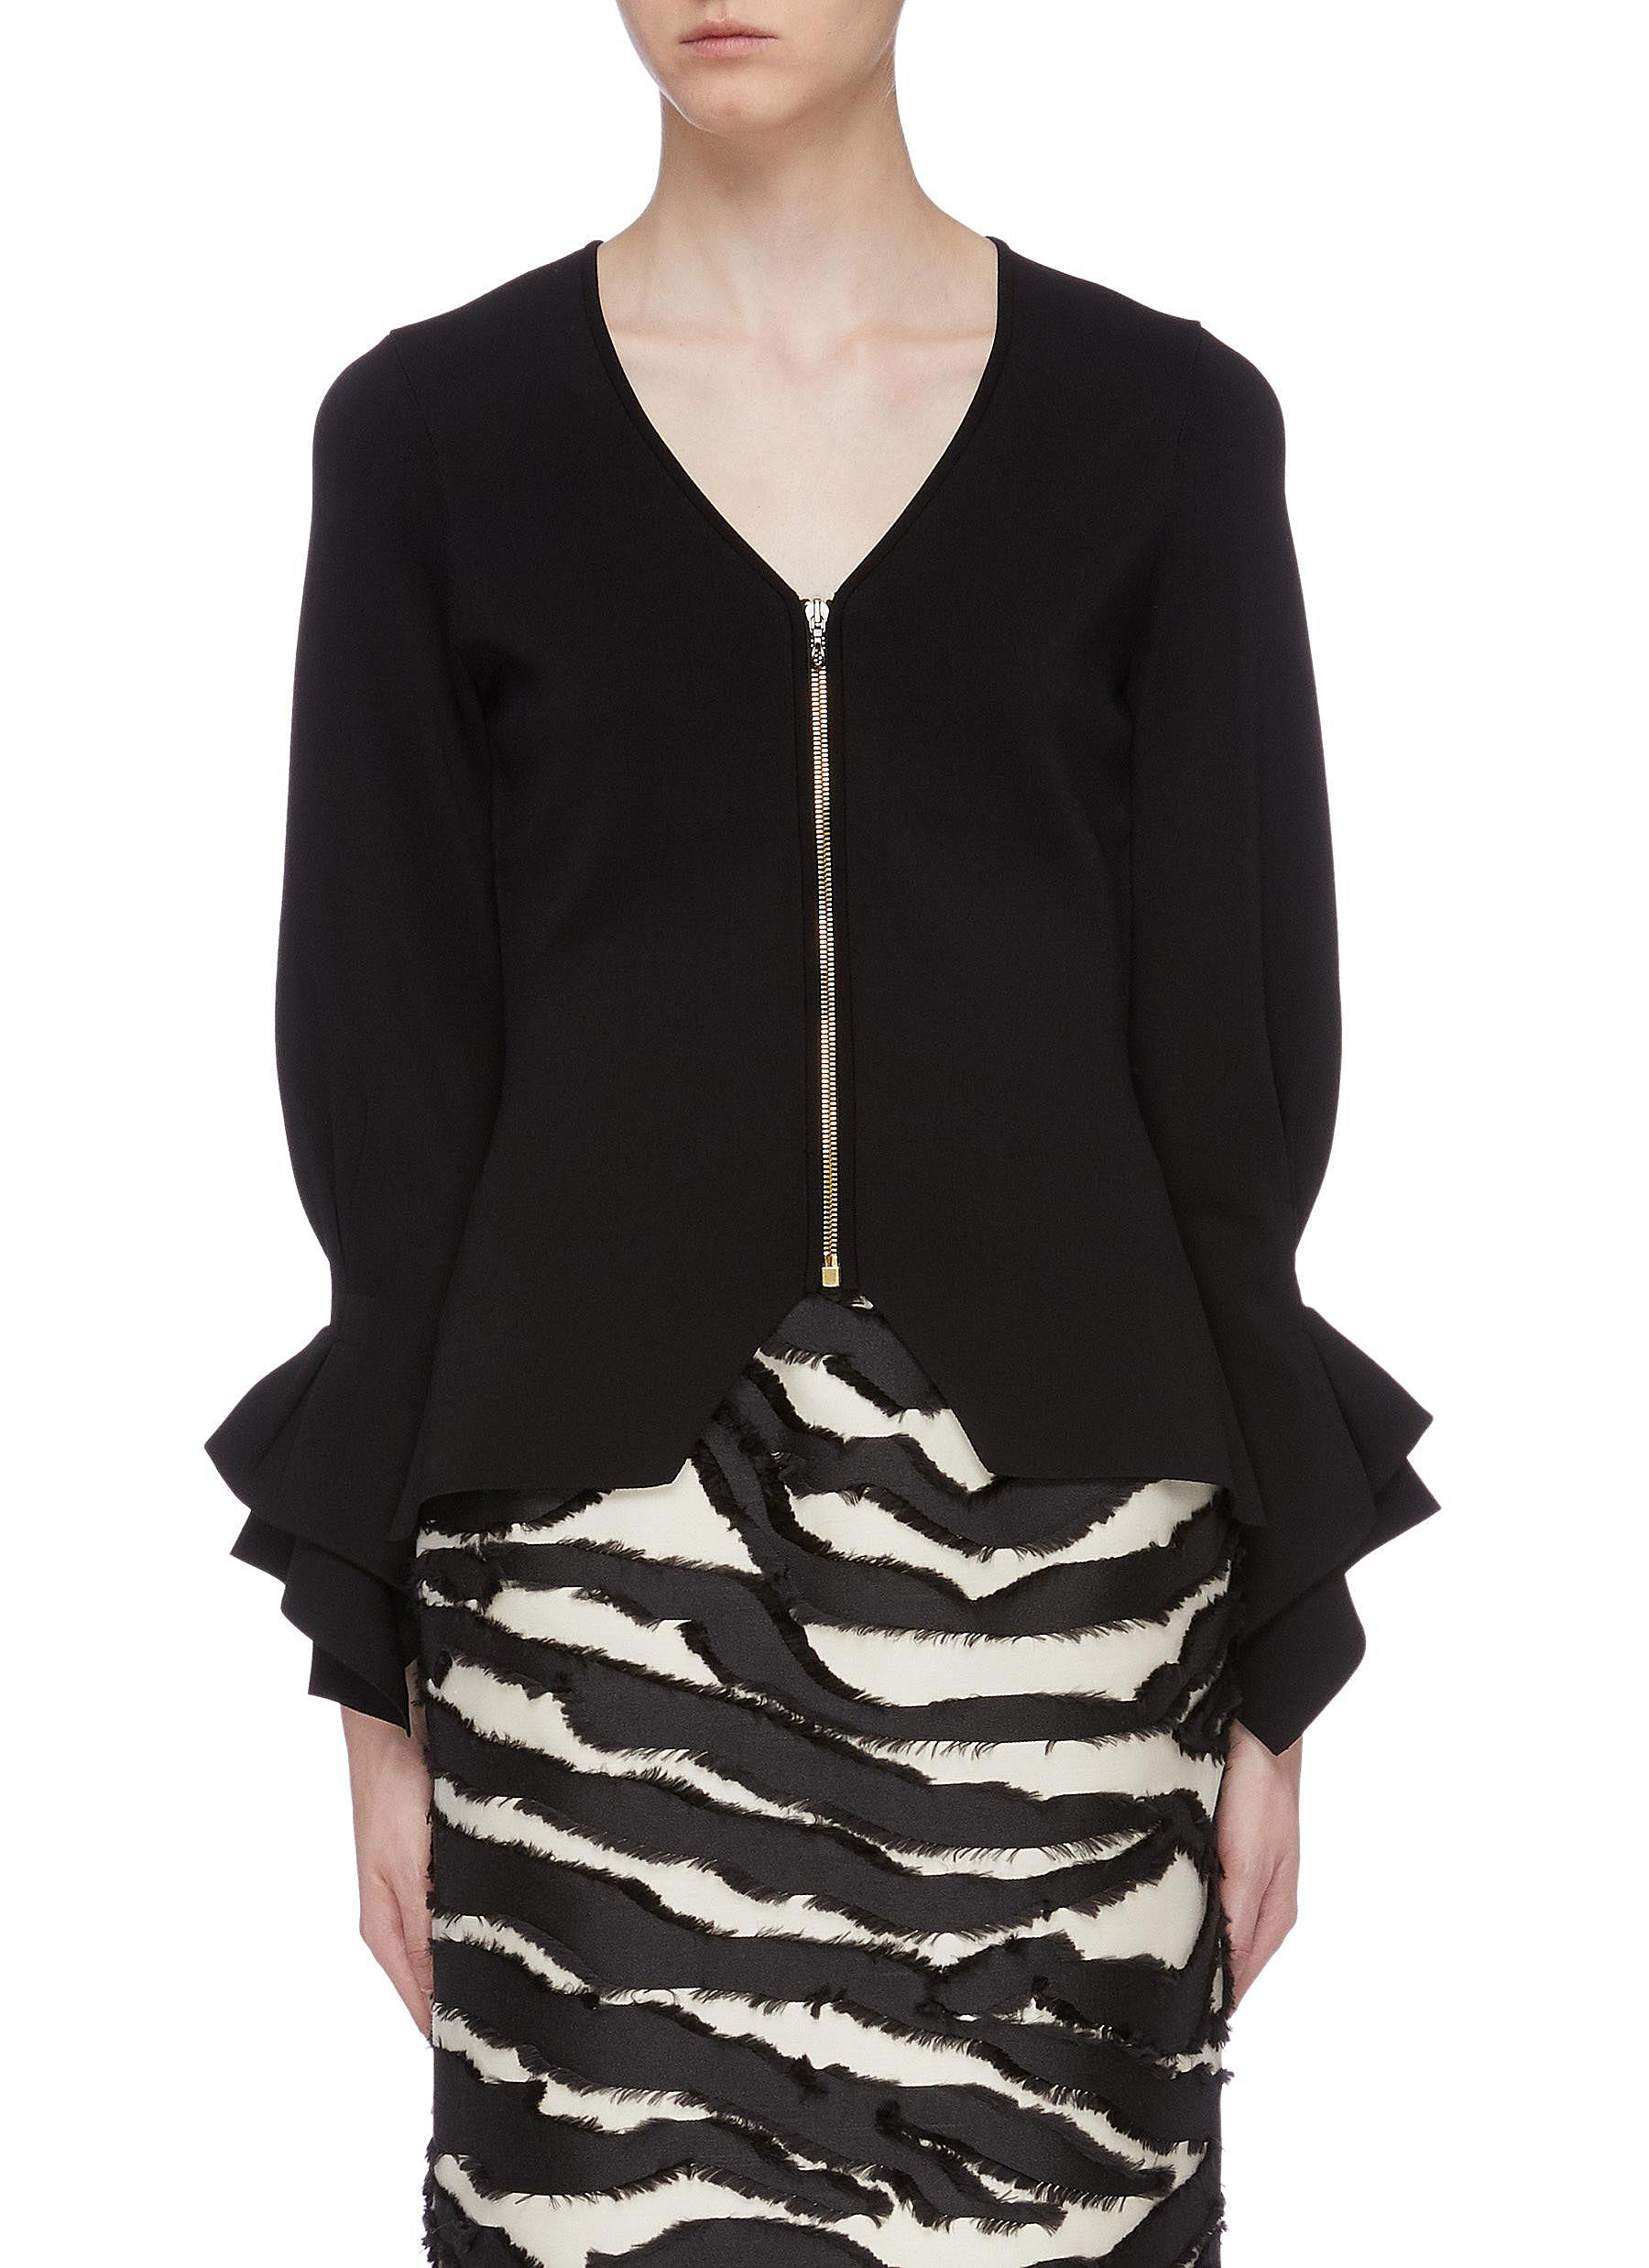 Positano tiered flared cuff knit jacket by Roland Mouret